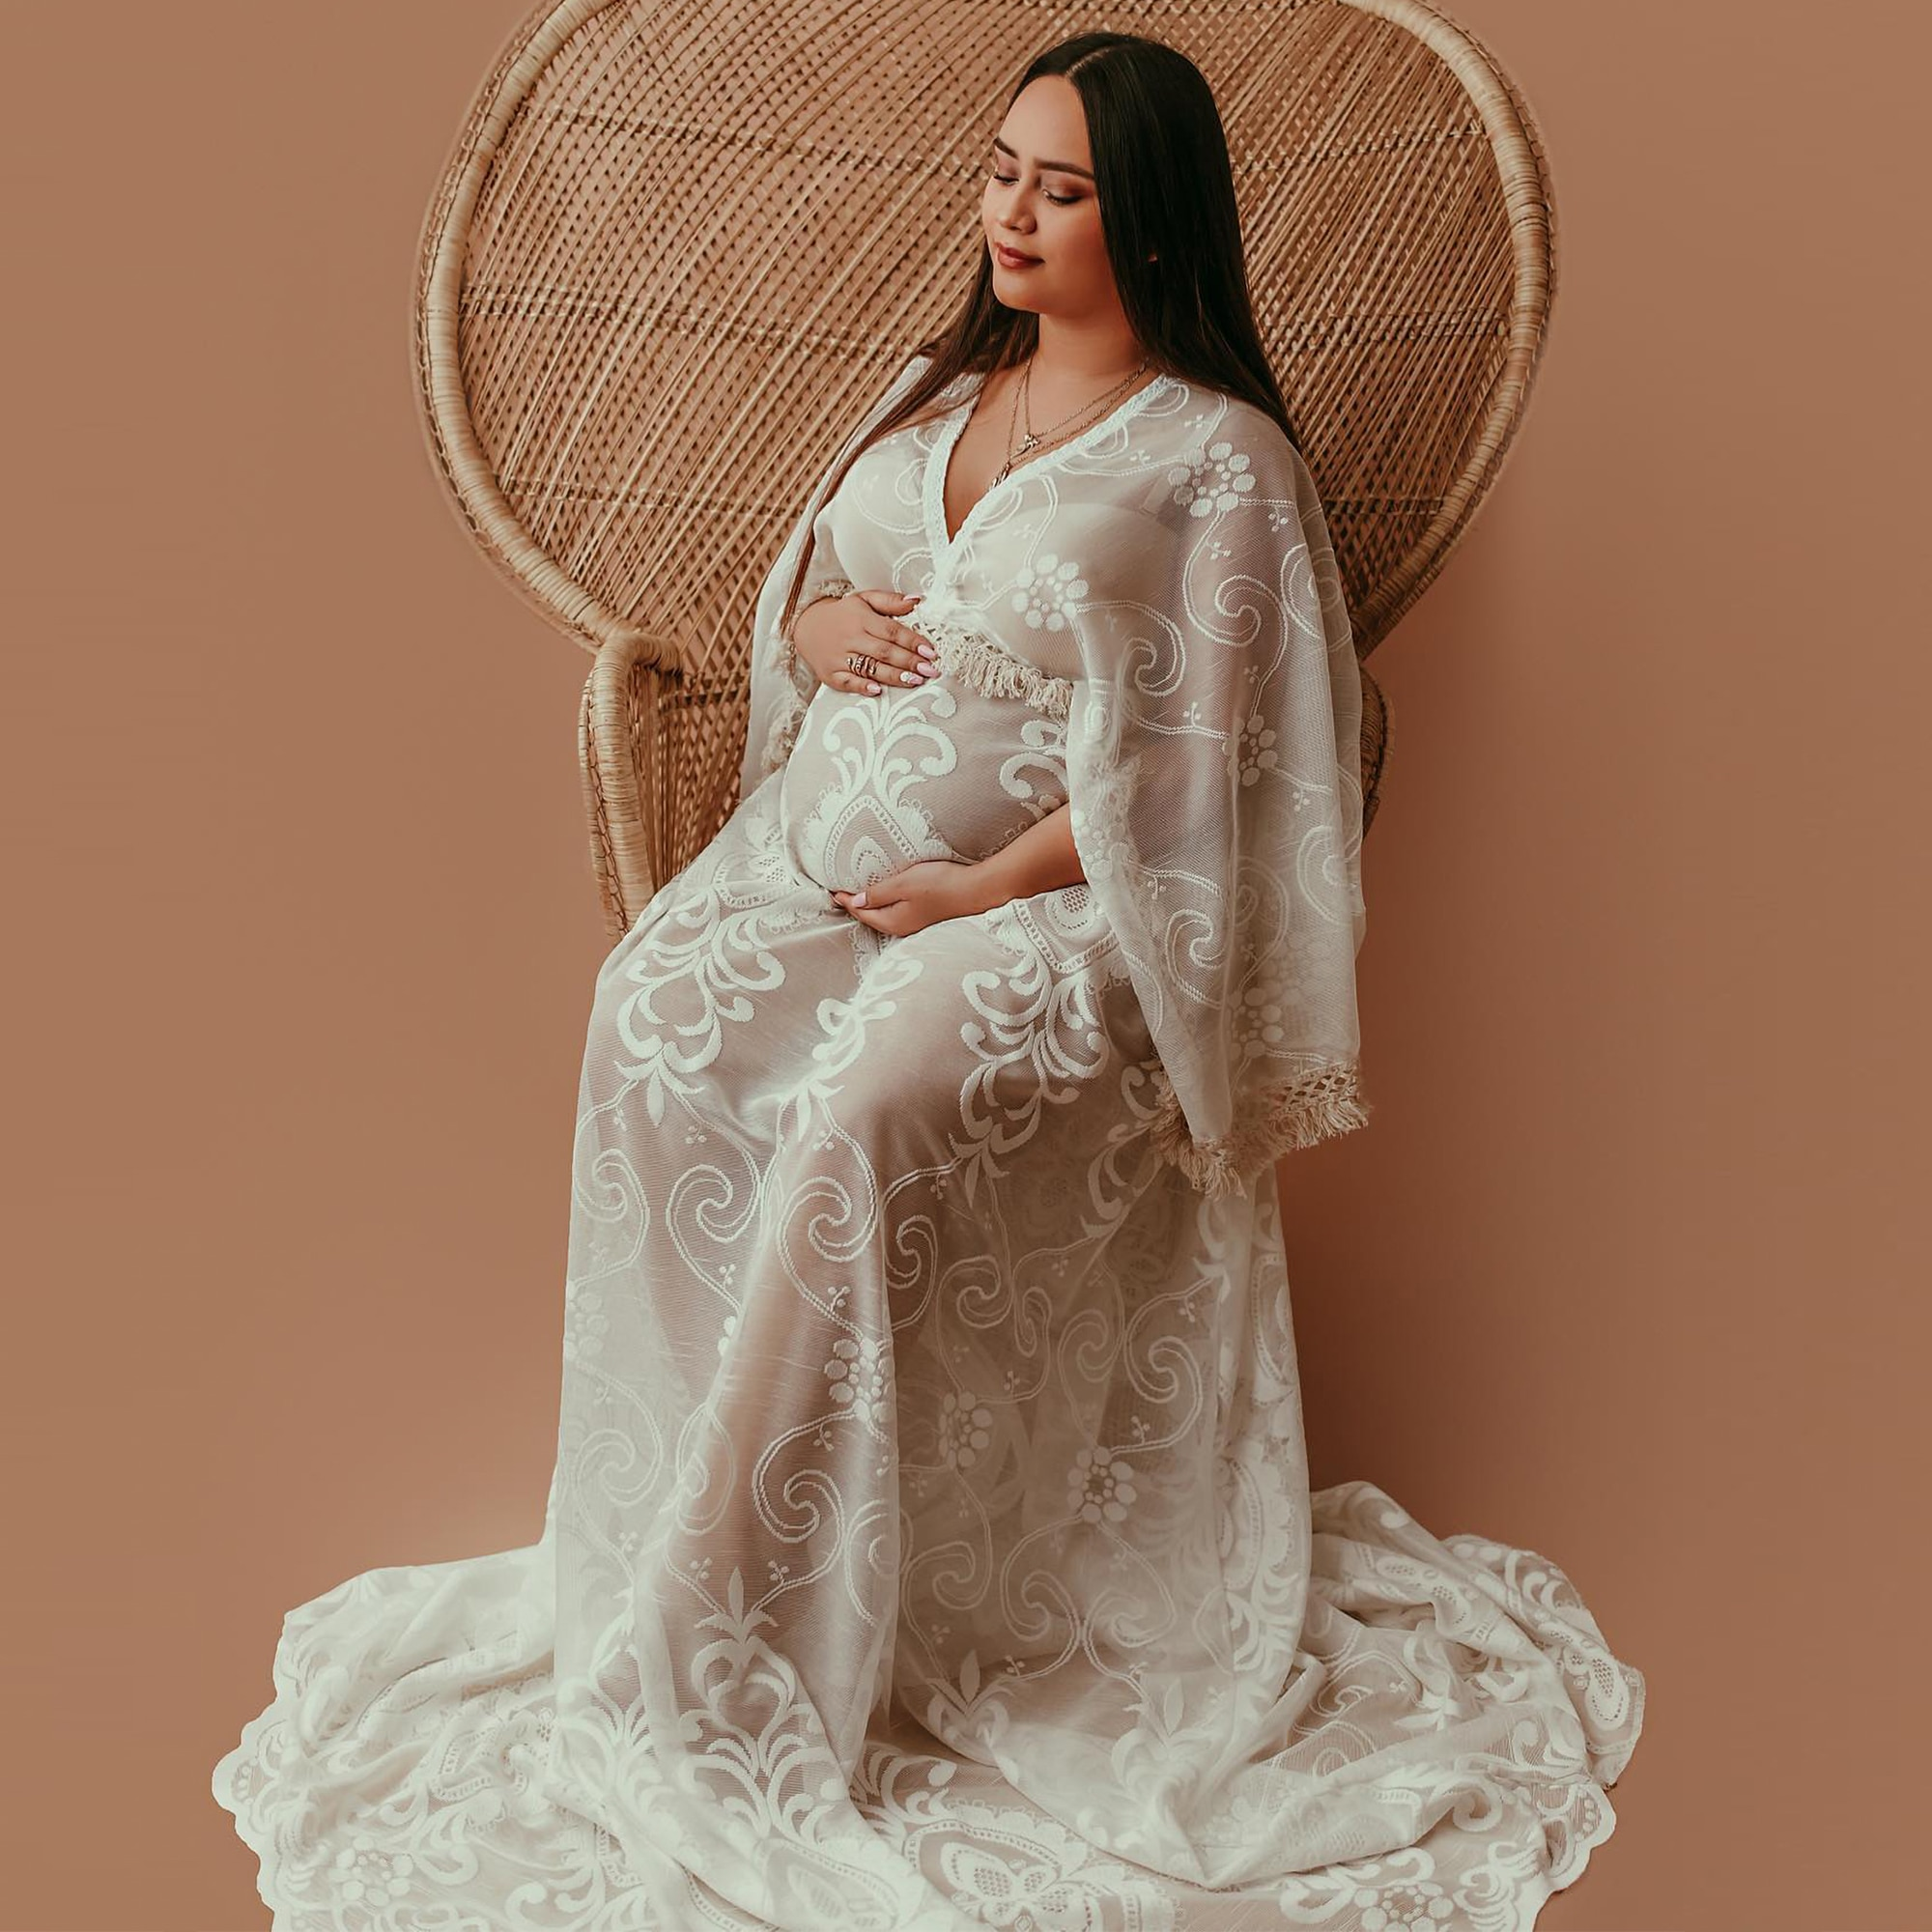 Don&Judy Boho V-neck Long Sleeve Lace Maternity Gown Photography Dress Party Dresses Baby Shower Photo Props for Photo Shoot enlarge